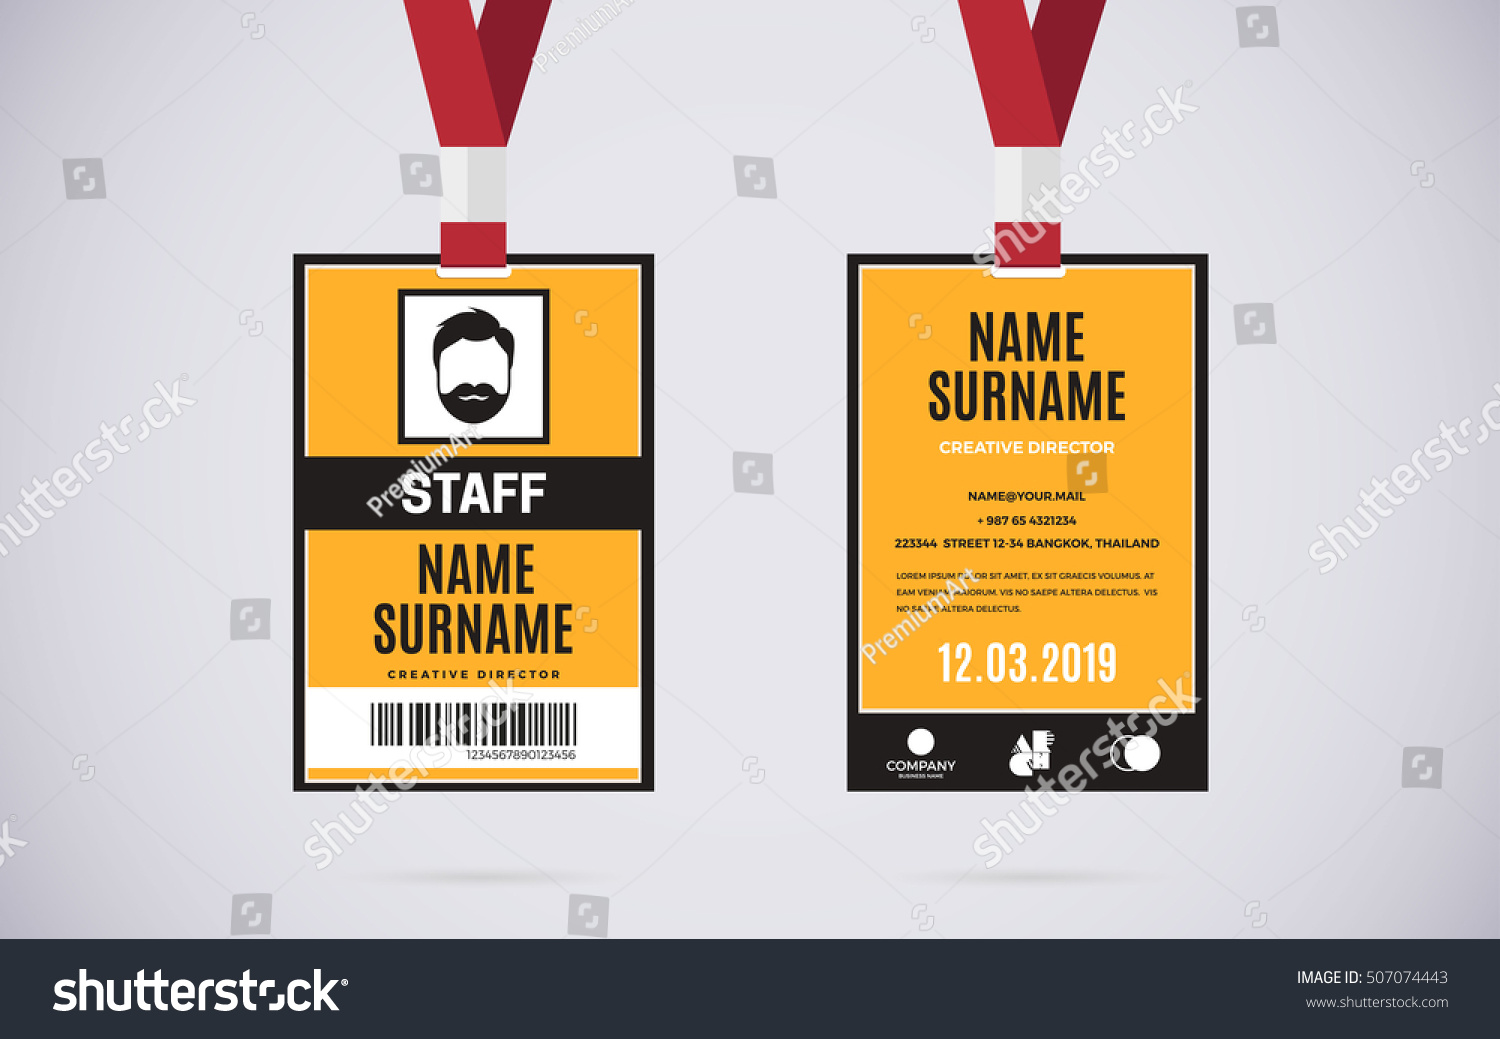 Event staff id card set lanyard stock vector 507074443 for Staff id badge template